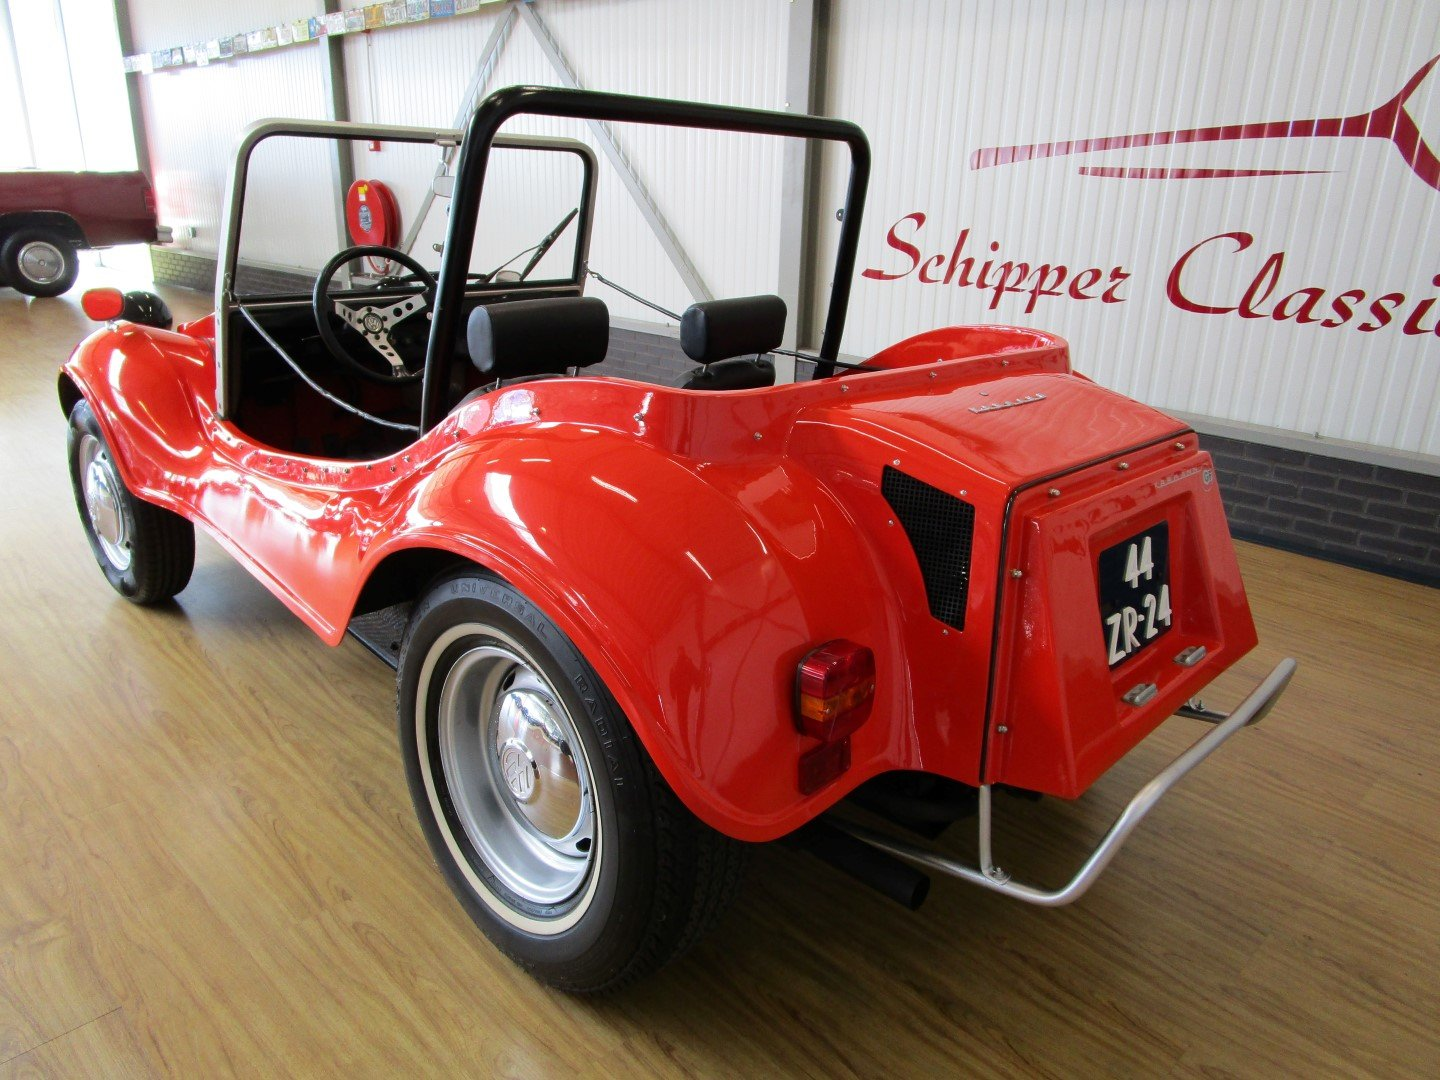 1972 Volkswagen Karmann GF Buggy former Royal House For Sale (picture 3 of 6)